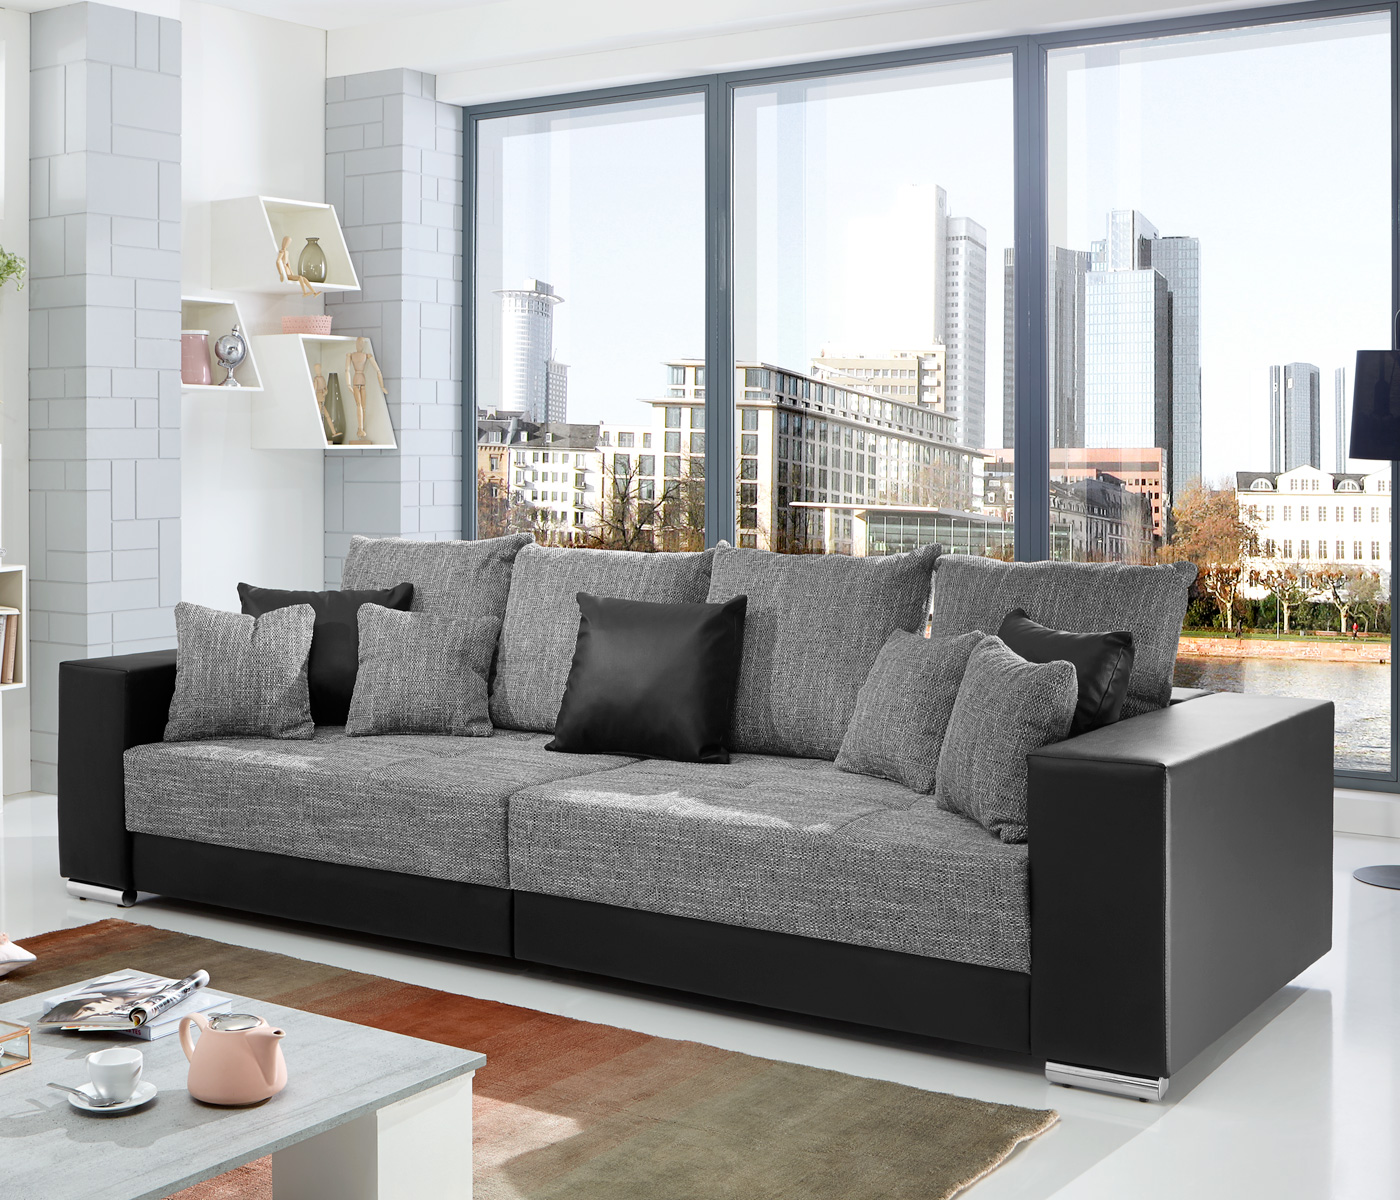 bigsofa adria big sofa wohnzimmer xxl couch. Black Bedroom Furniture Sets. Home Design Ideas